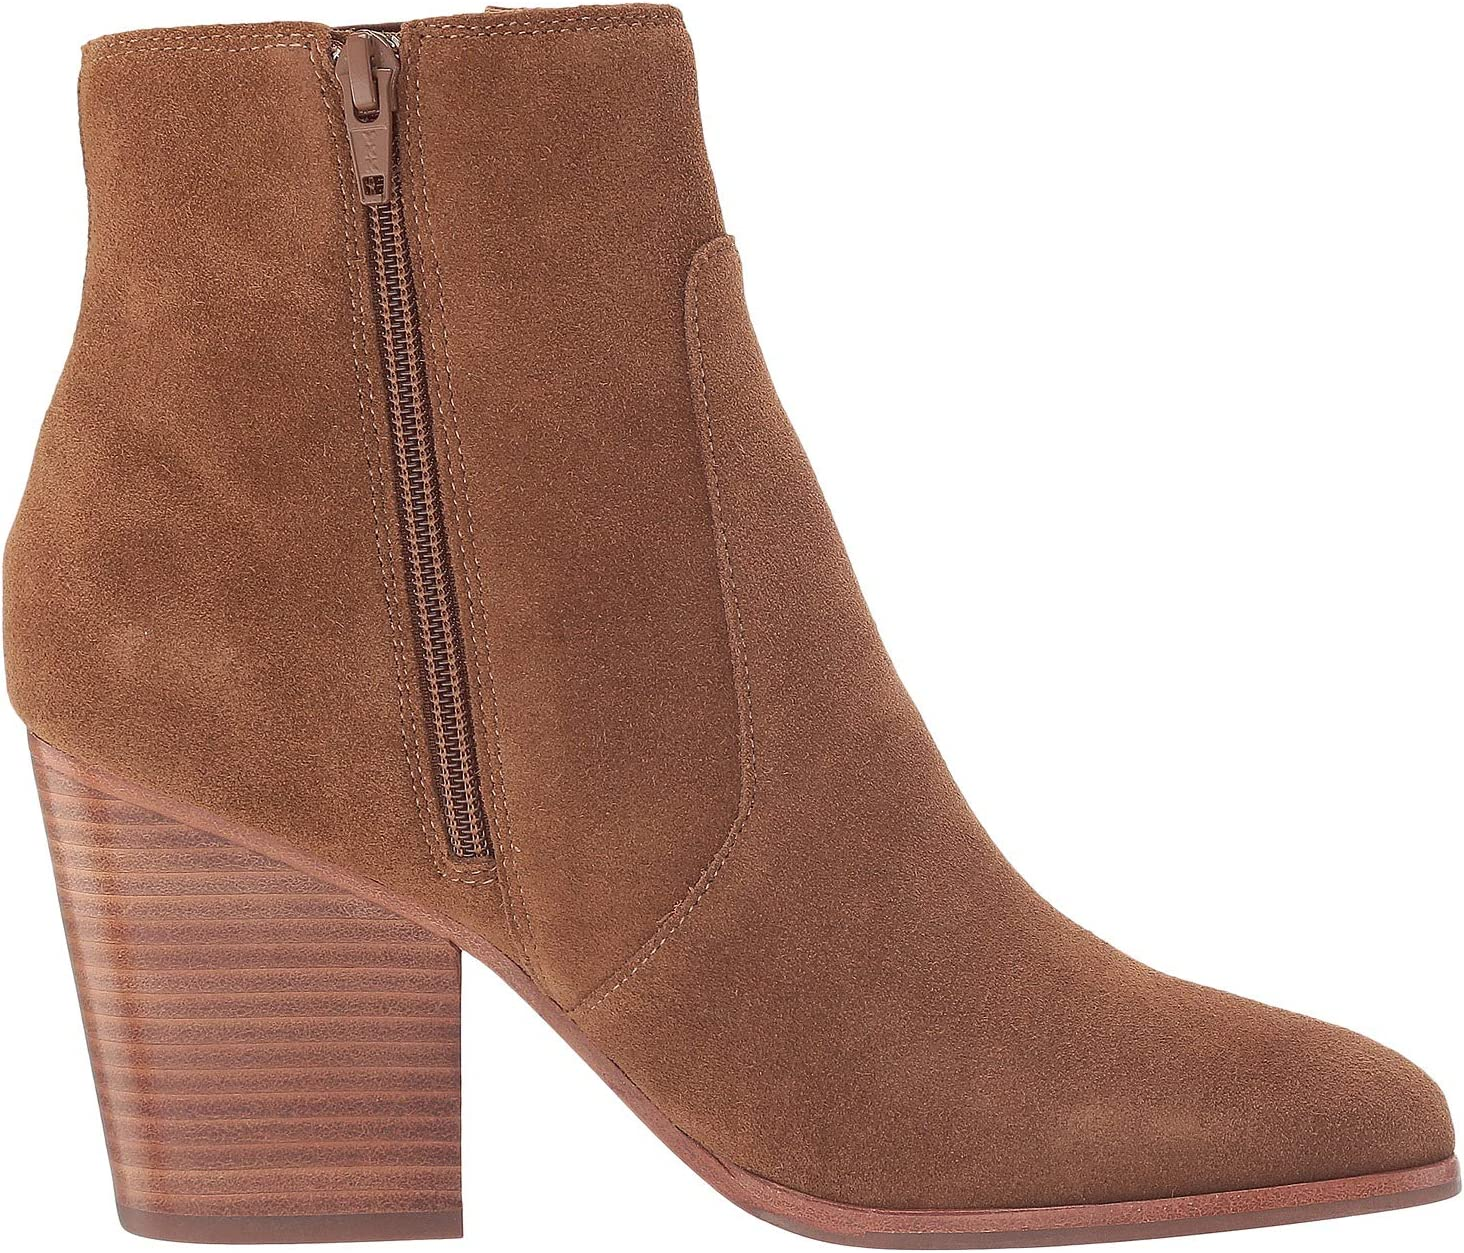 Soludos Emma Bootie | Women's shoes | 2020 Newest